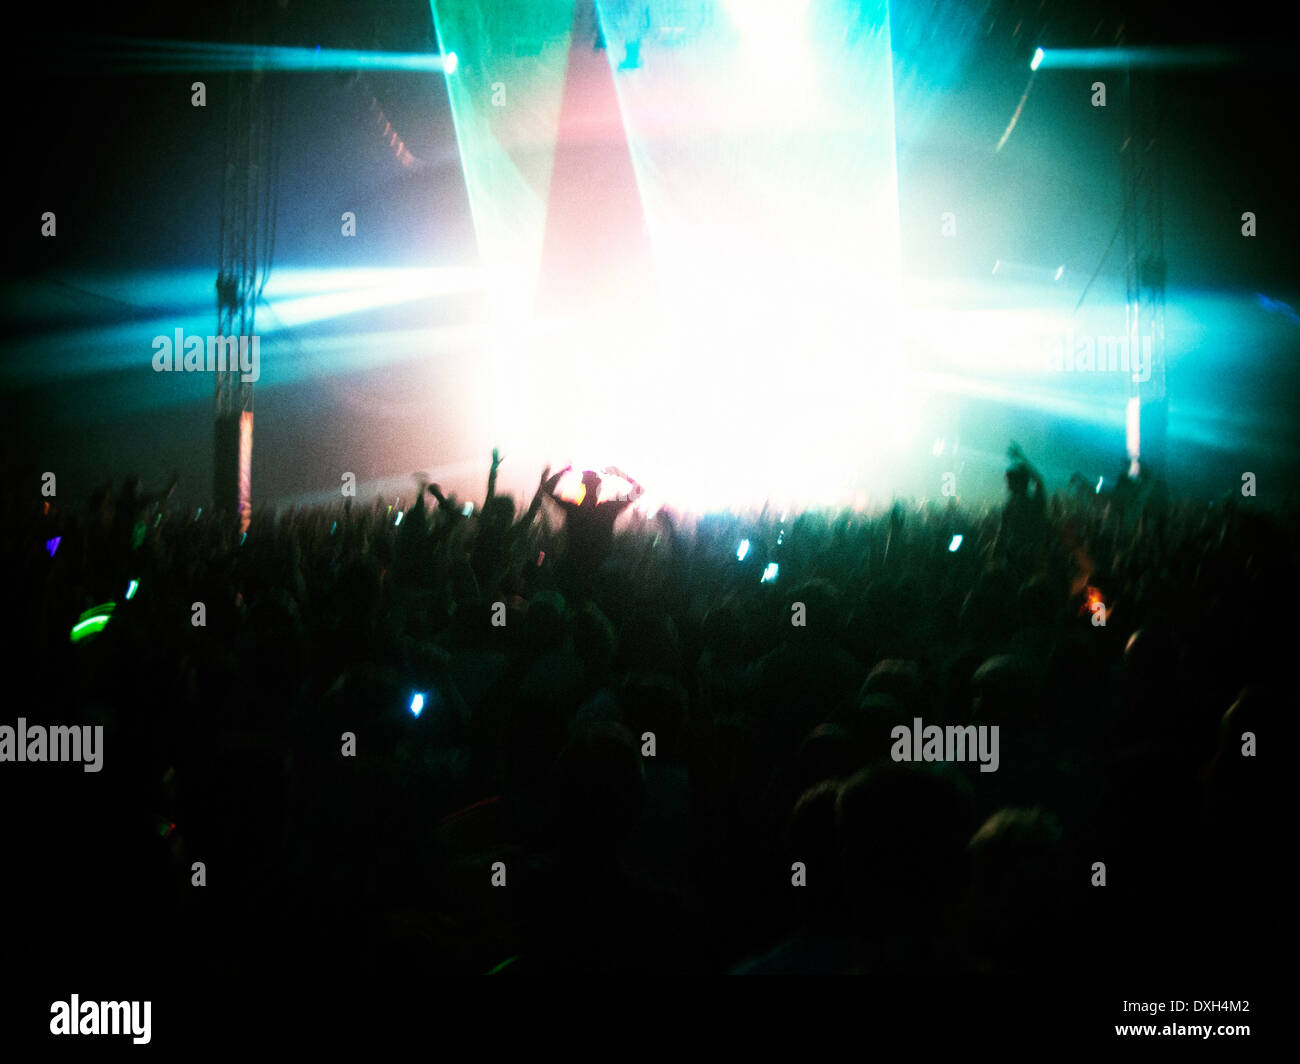 Fans facing illuminated stage Stock Photo